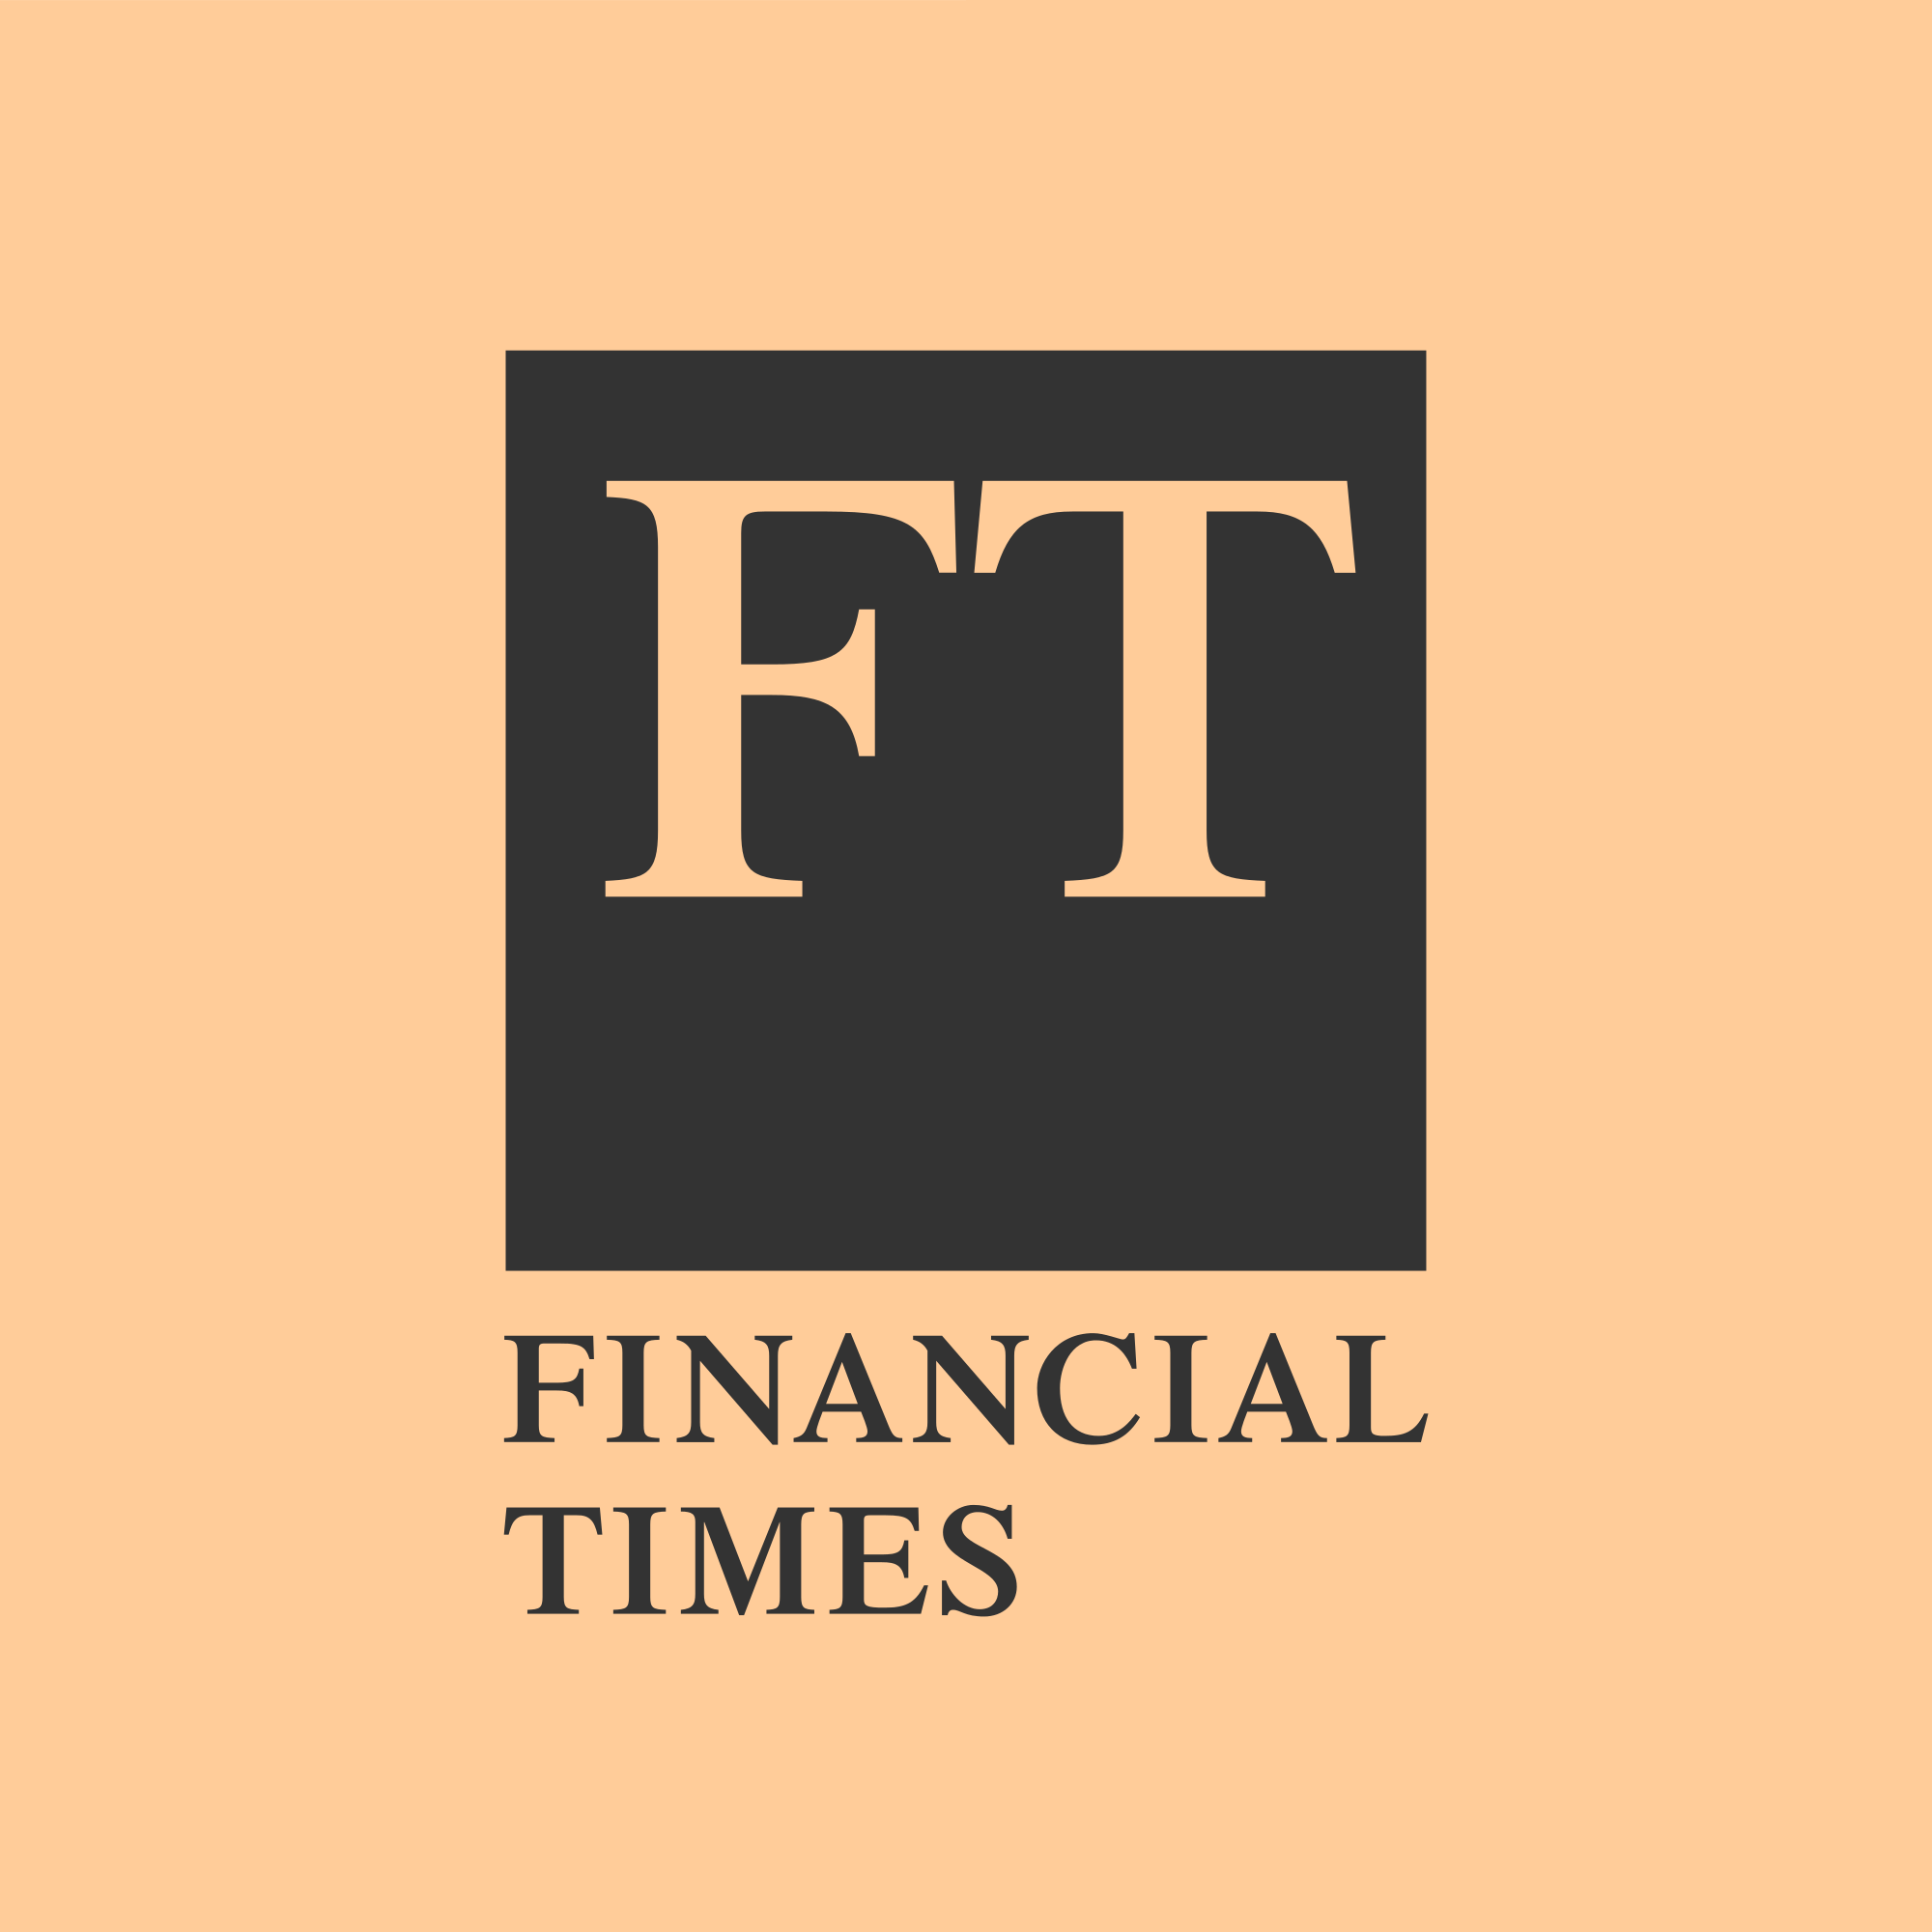 The Financial Times: Rotterdam is